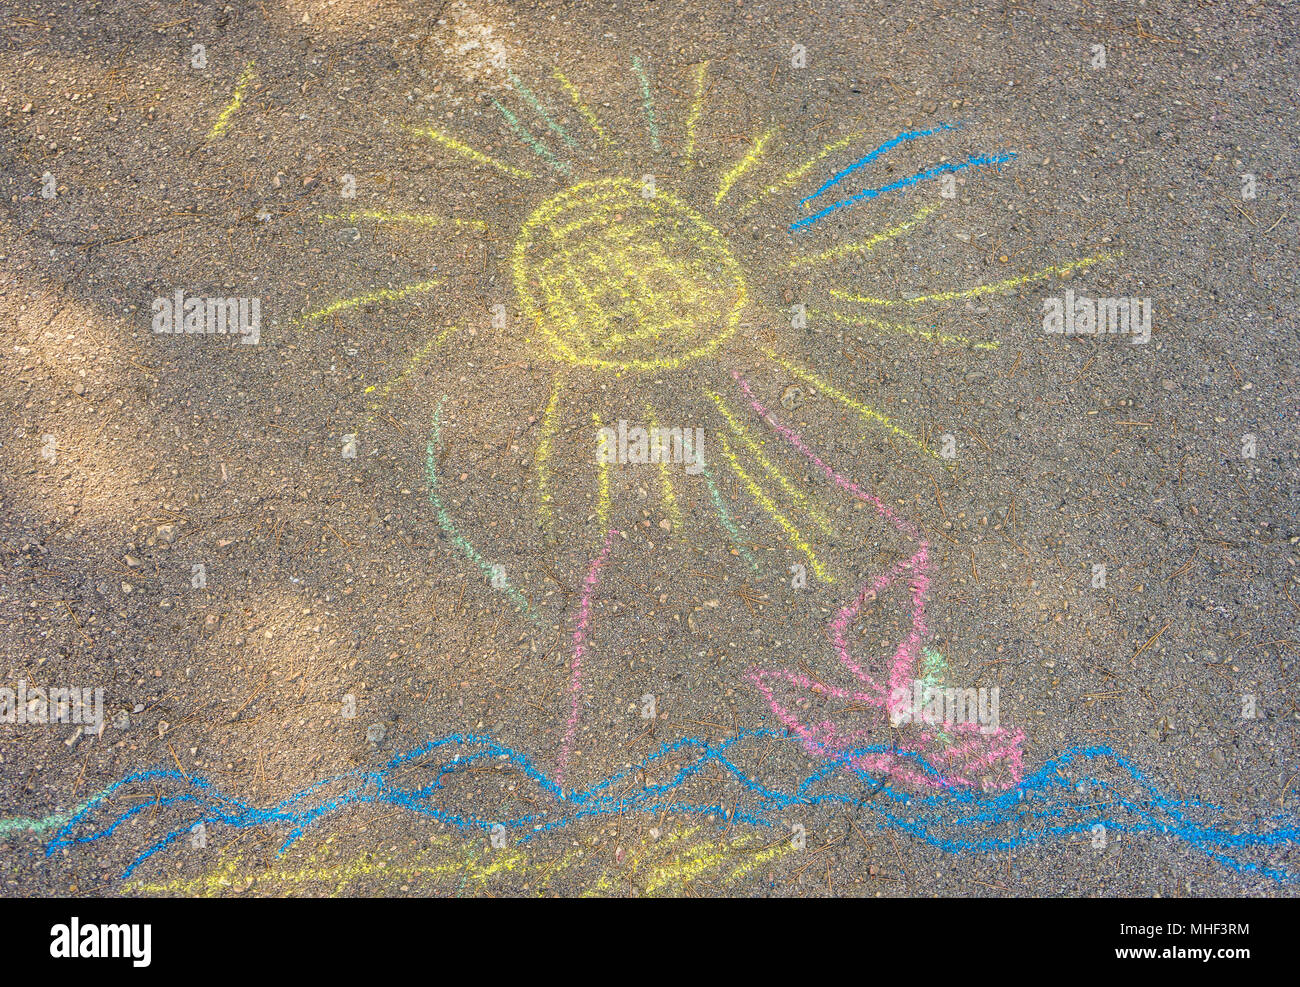 Children's drawing of the sea, the sun and the ship colored crayons on the asphalt. - Stock Image